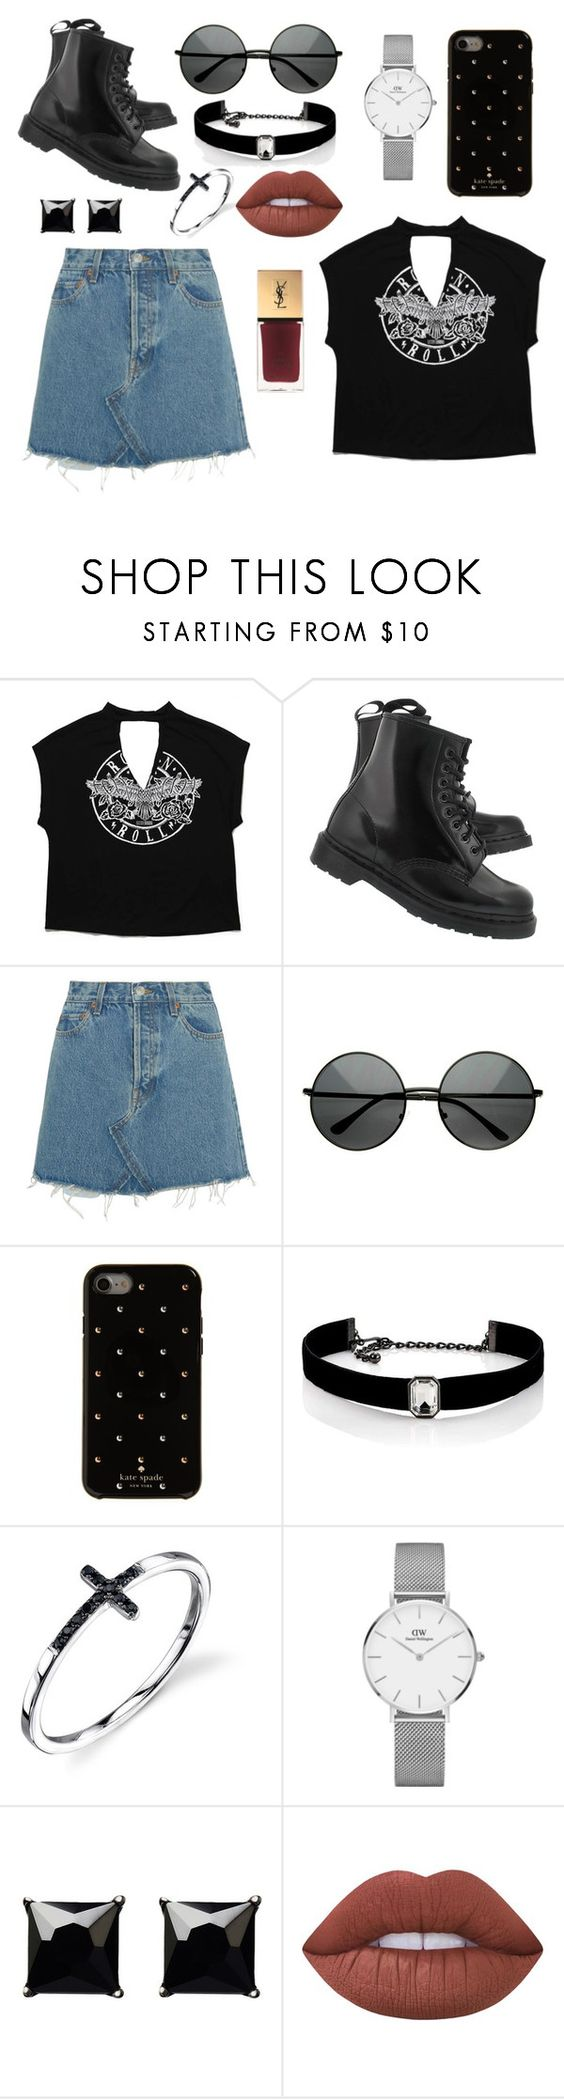 """Untitled #6"" by soninha97 on Polyvore featuring Dr. Martens, RE/DONE, Kate Spade, Kenneth Jay Lane, Daniel Wellington, Witchery, Lime Crime and Yves Saint Laurent"